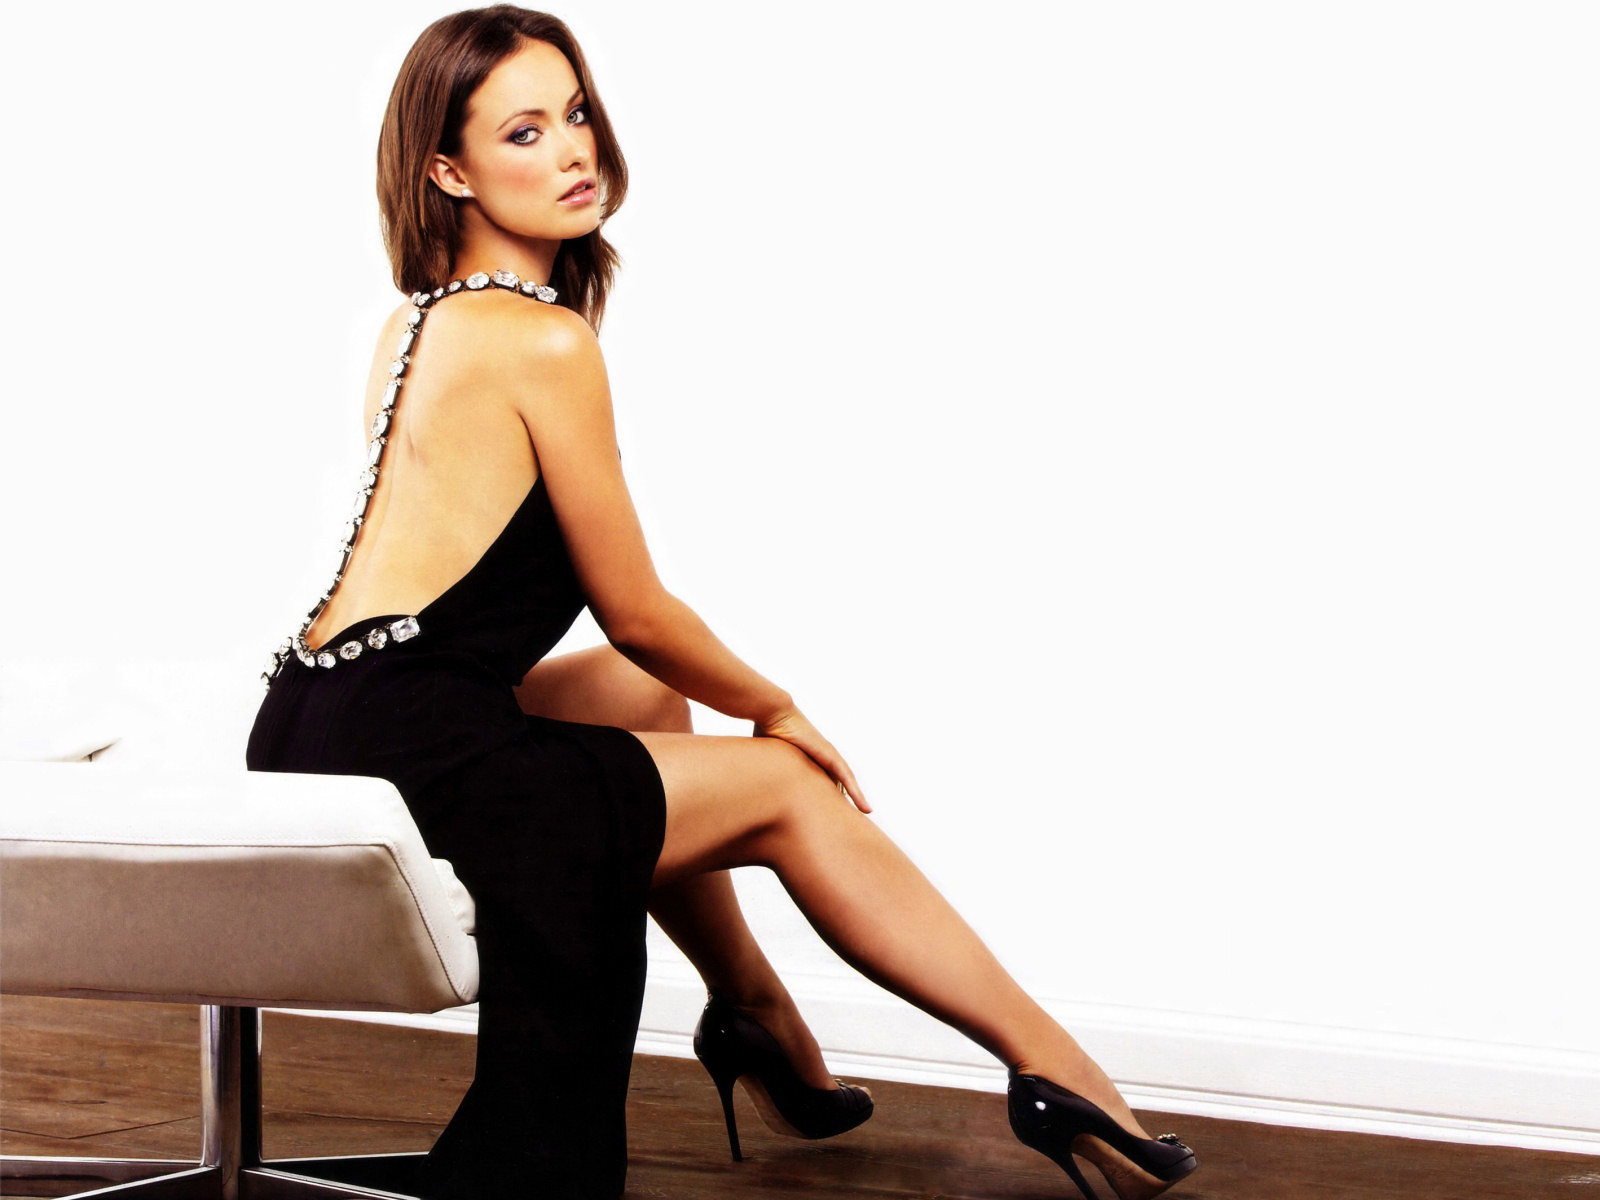 Olivia Wilde - Olivia Wilde Wallpaper (14237241) - Fanpop